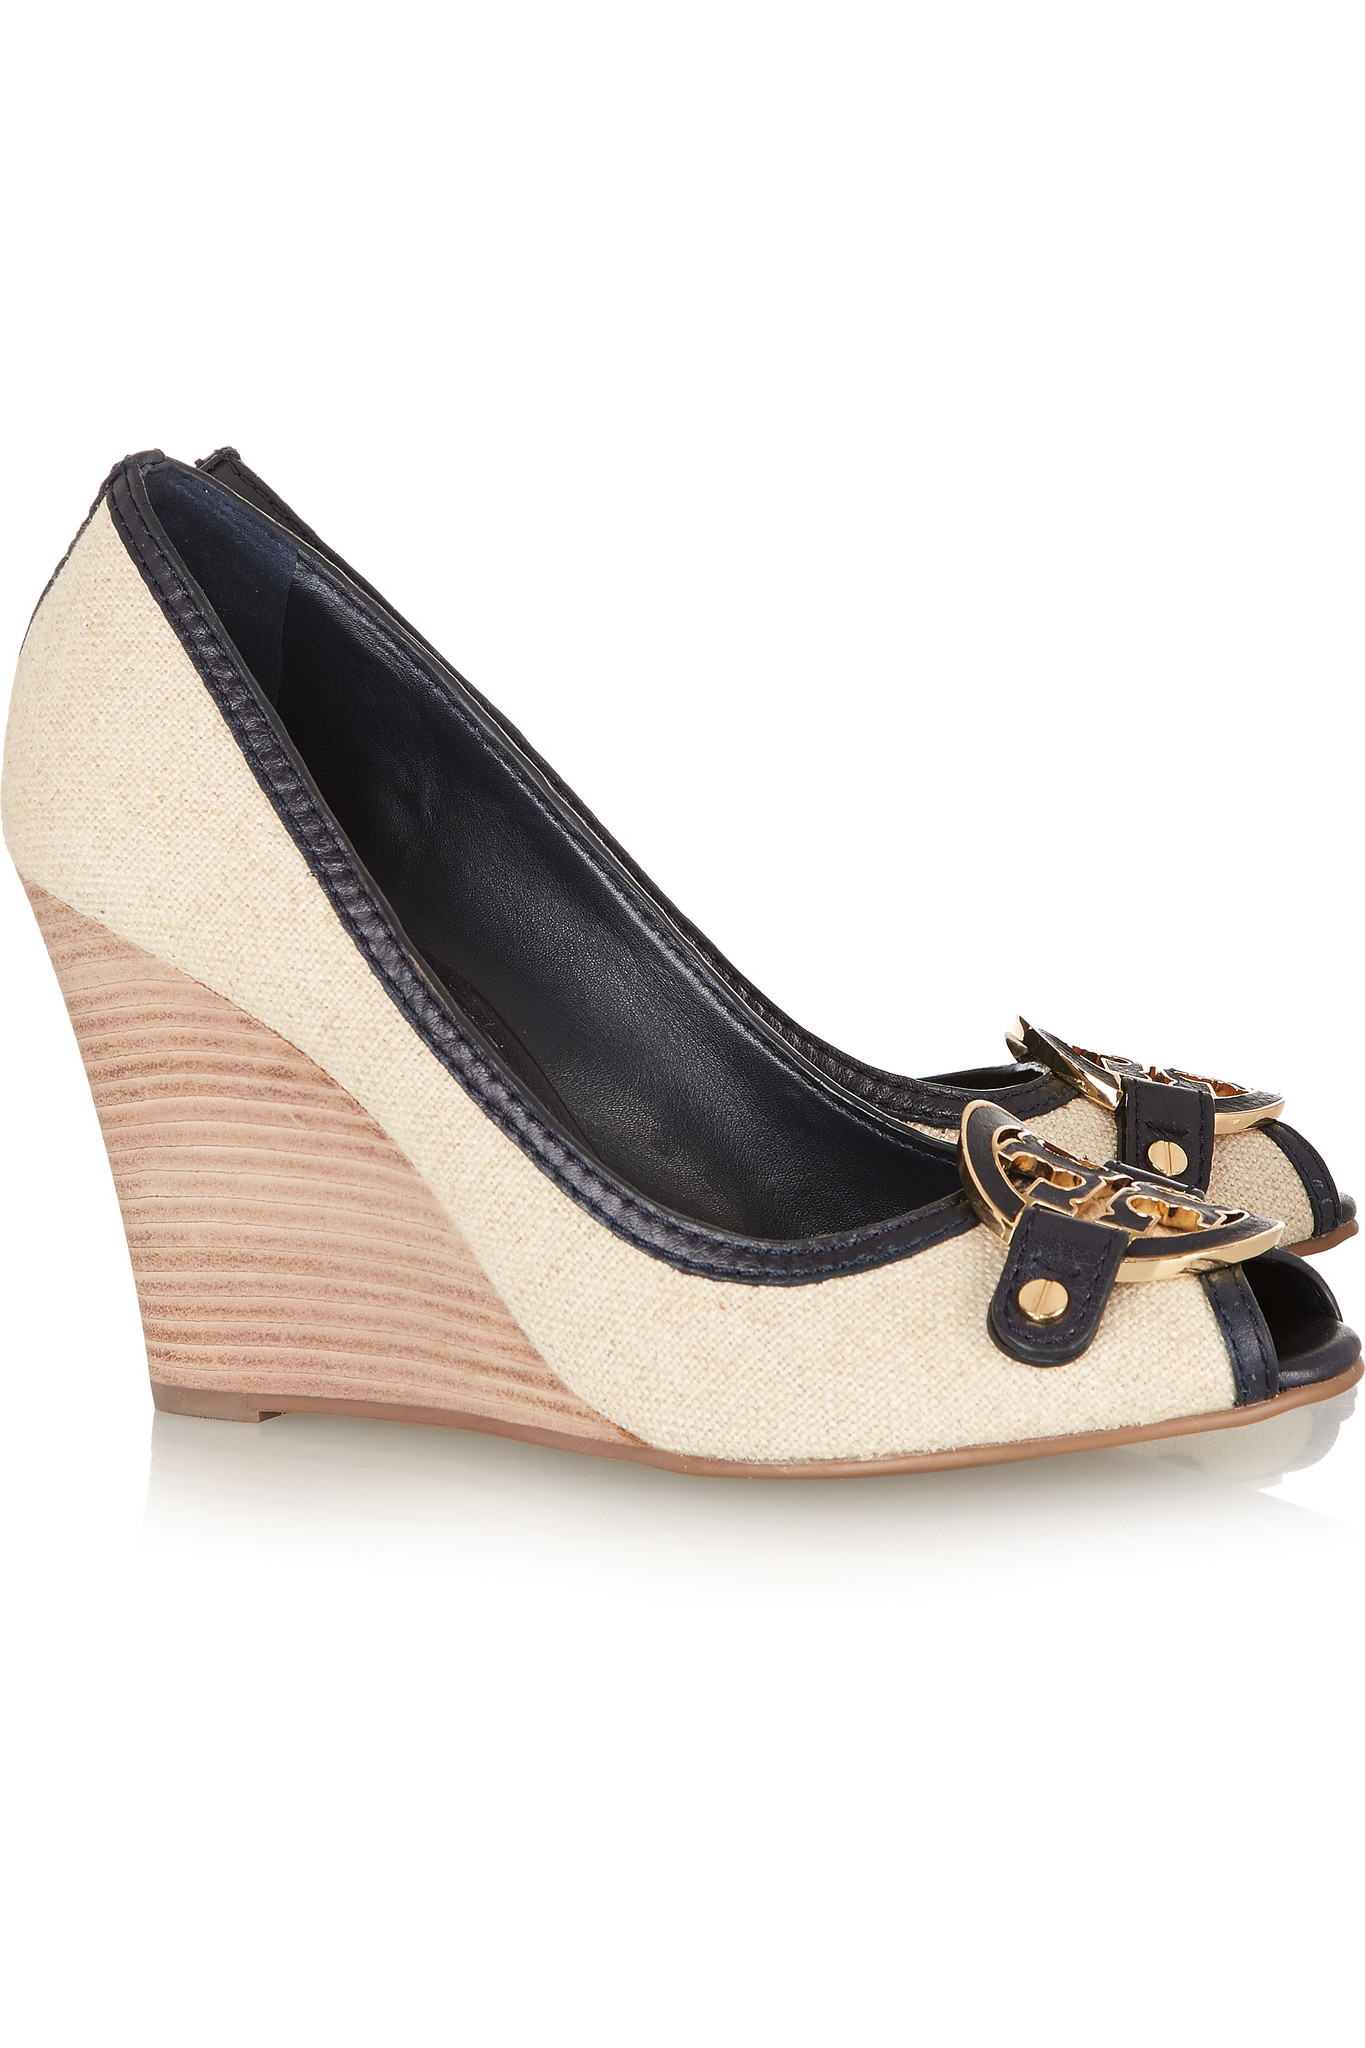 1133b6e7d693 Tory Burch Amanda Leather-trimmed Canvas Wedge Pumps in Natural - Lyst